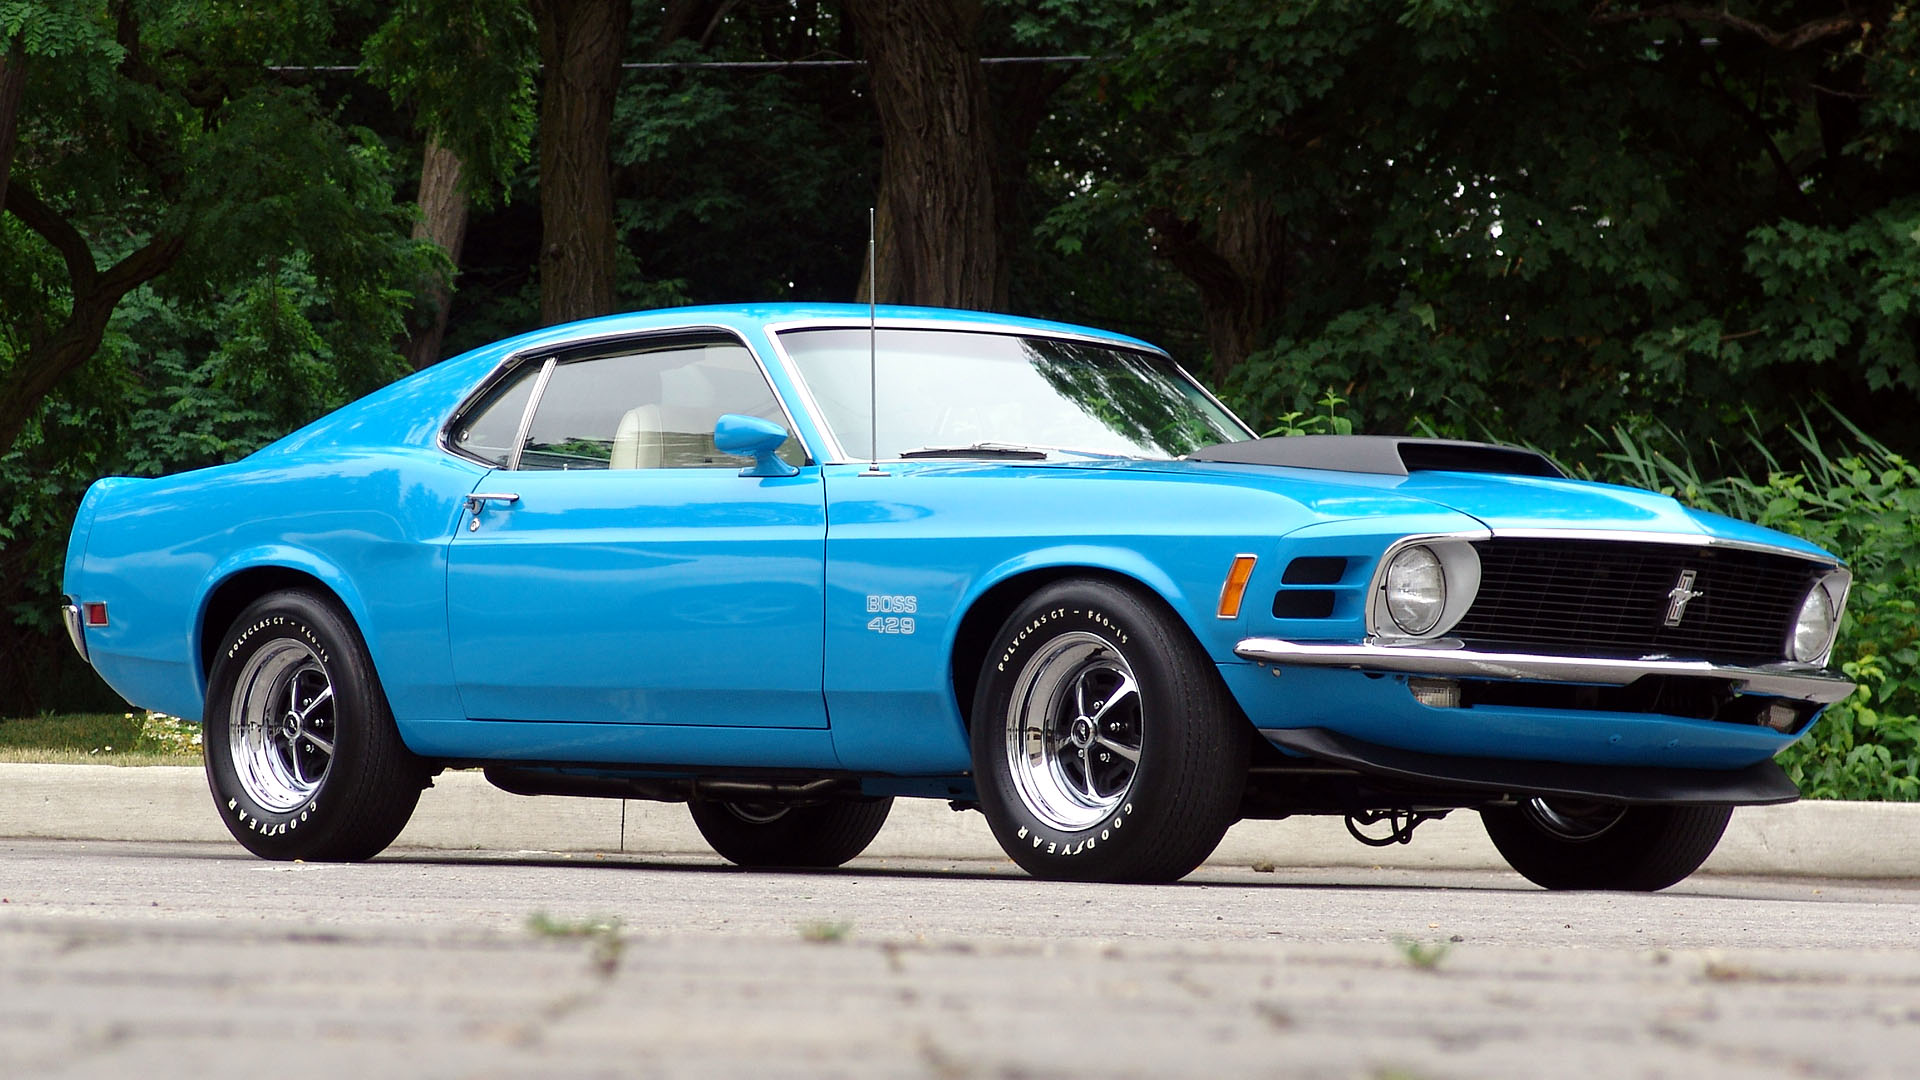 Cars Muscle Wallpaper 1920x1080 Cars Muscle Cars Ford Mustang 1920x1080